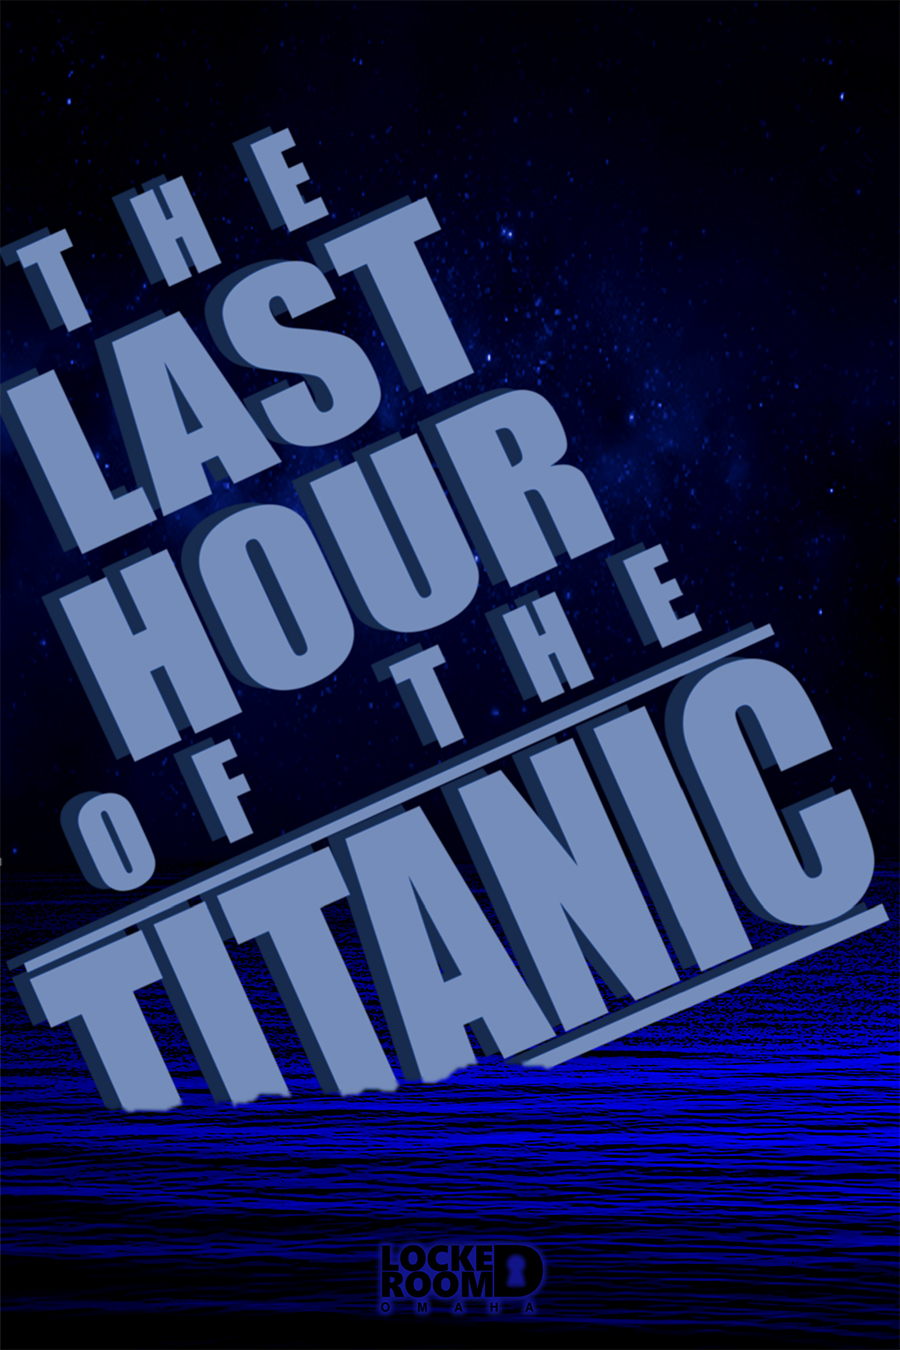 Poster of Locked Room Omaha's escape room: The Last Hour of the Titanic